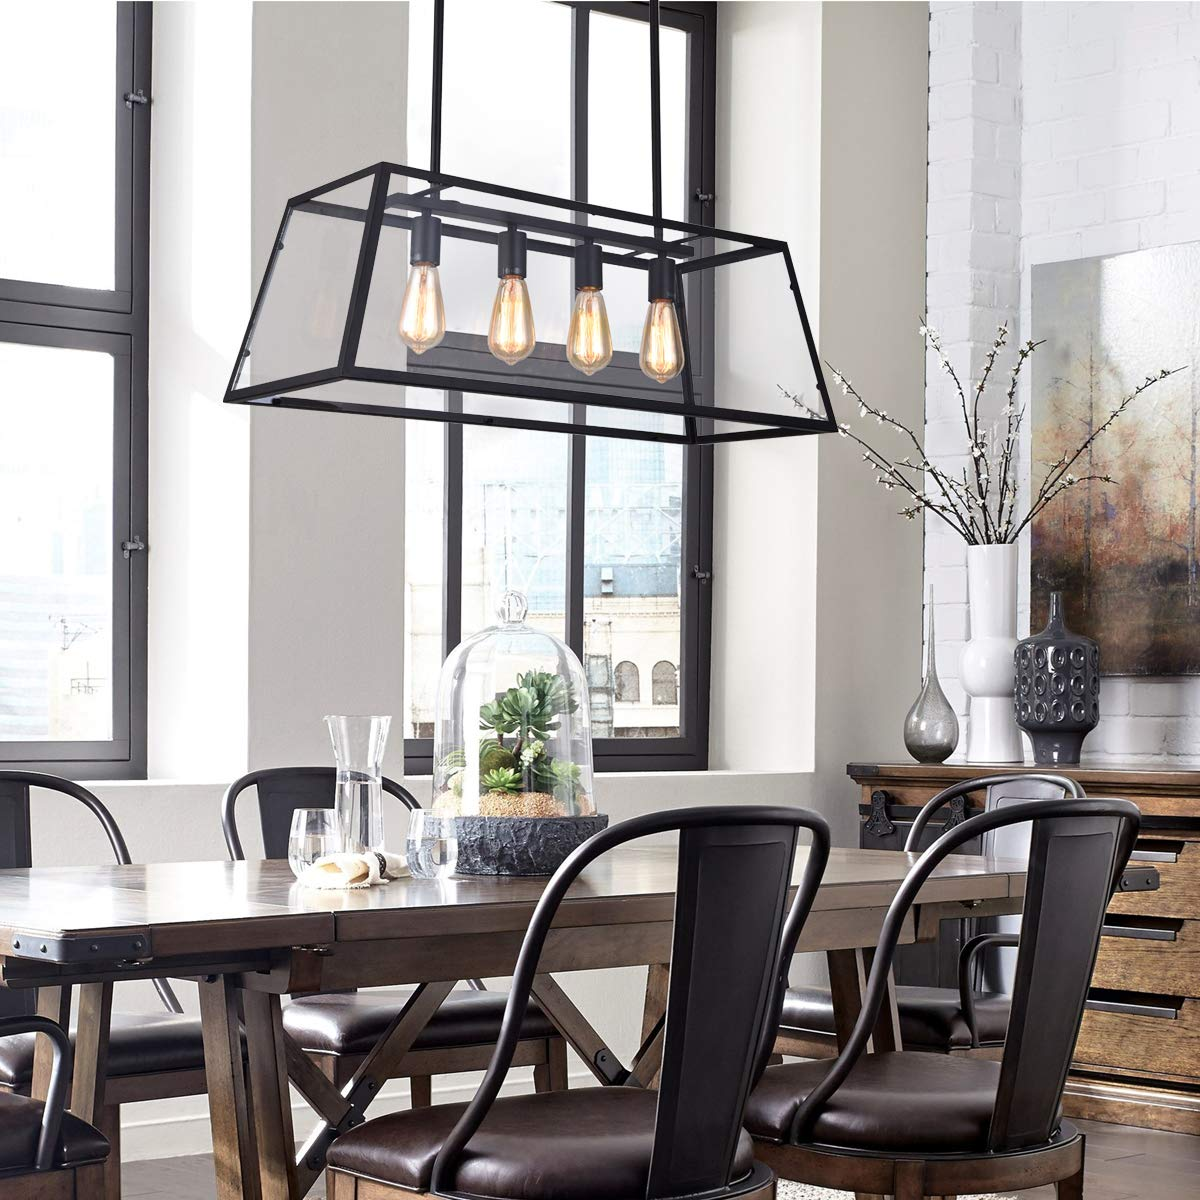 mirrea 4-Light Kitchen Island Pendant Matte Black Shade with Clear Glass Panels Modern Industrial Chandelier for Dinning Room by mirrea (Image #2)